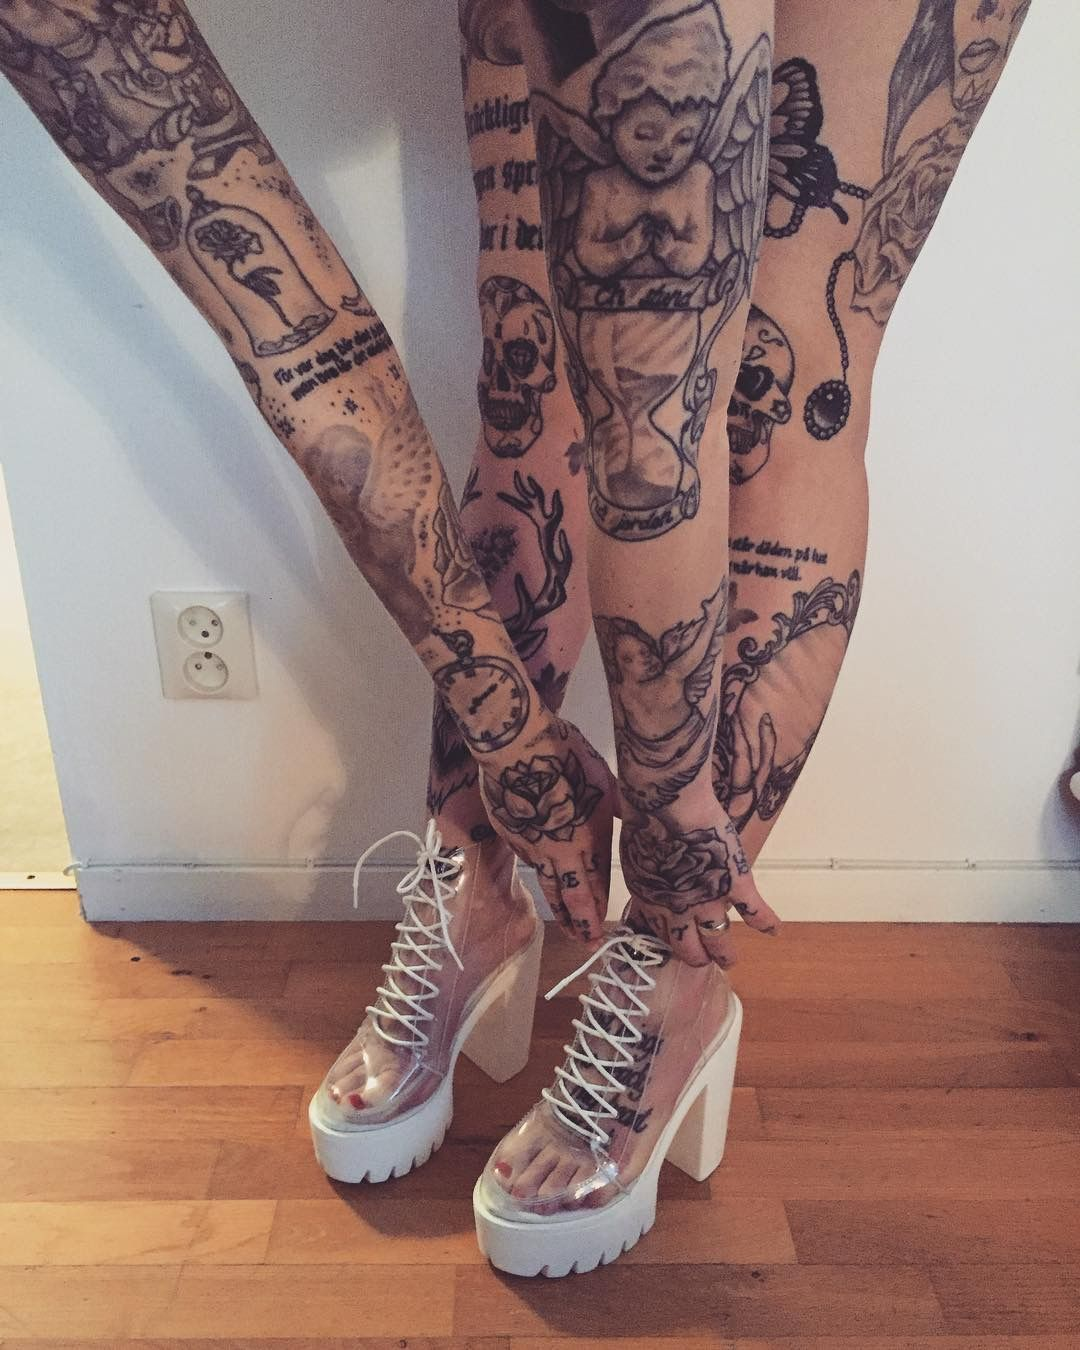 Cute tattoo ideas for girls pin by brunaa fidelis on coisas legais  pinterest  tattoo